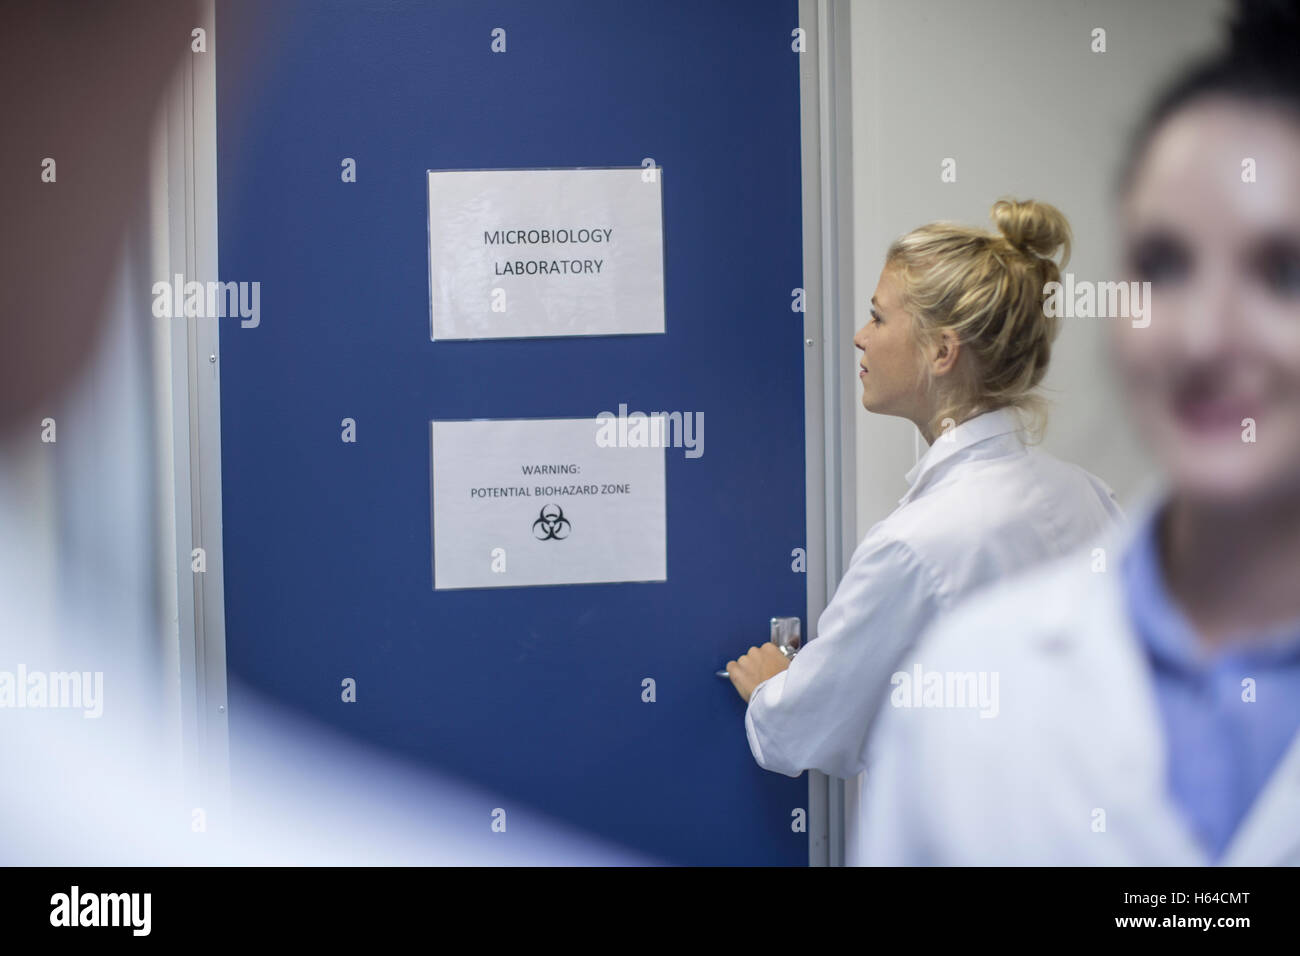 Woman in lab coat opening door to microbiology laboratory - Stock Image